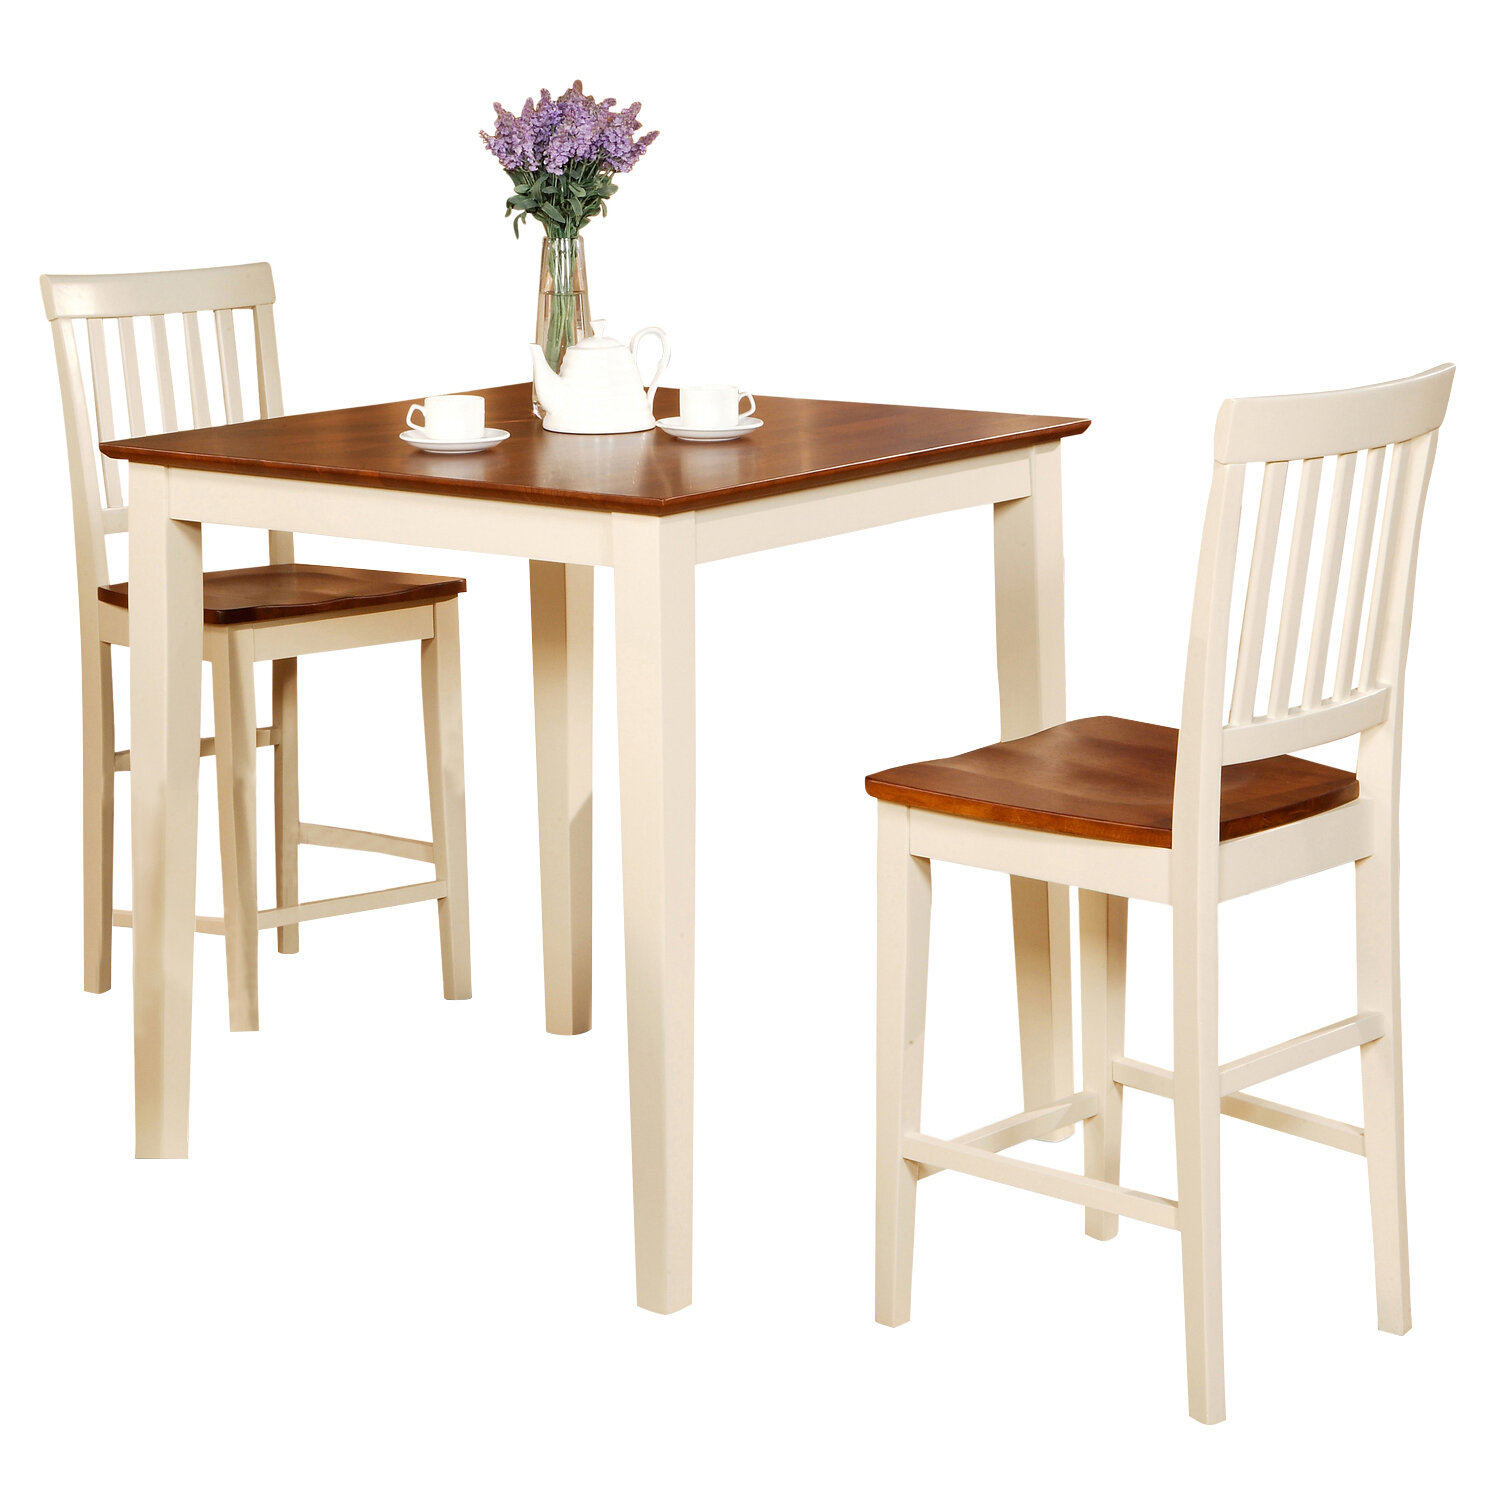 Vernon 3 Piece Counter Height Dining Set  sc 1 st  Foter & Light Wood Counter Height Dining Sets - Foter